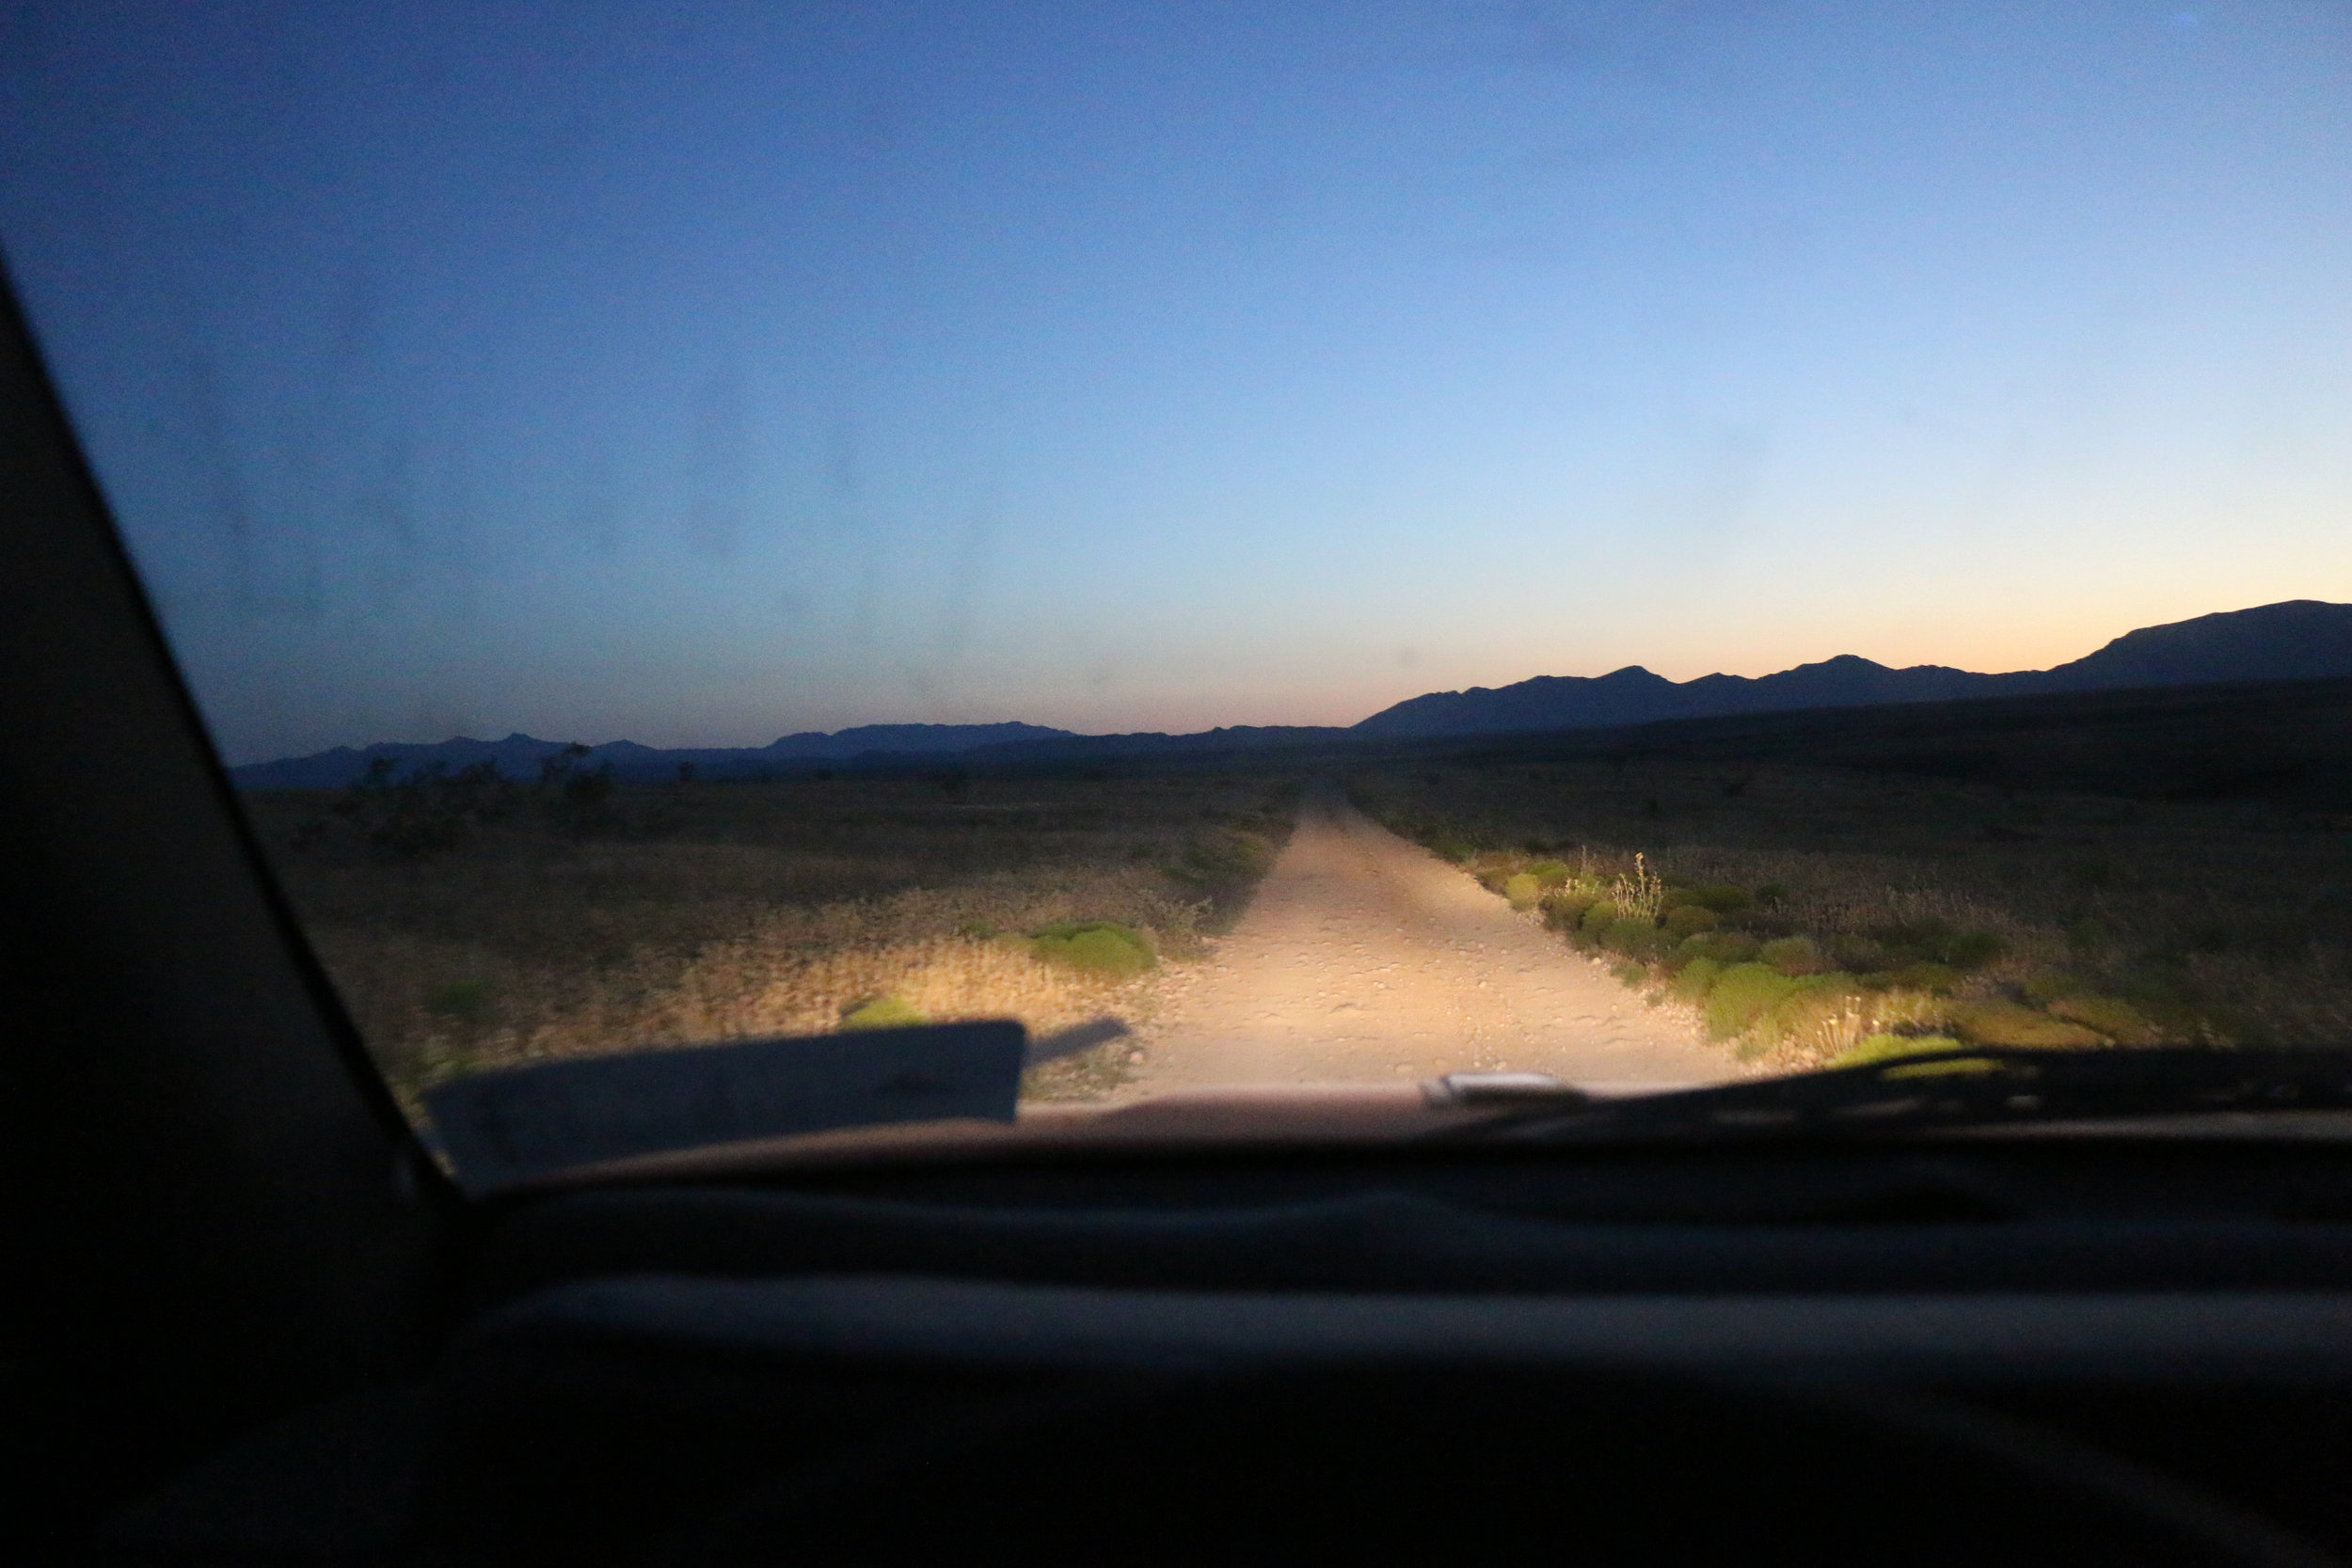 Driving into the night on (not) smooth BLM roads.